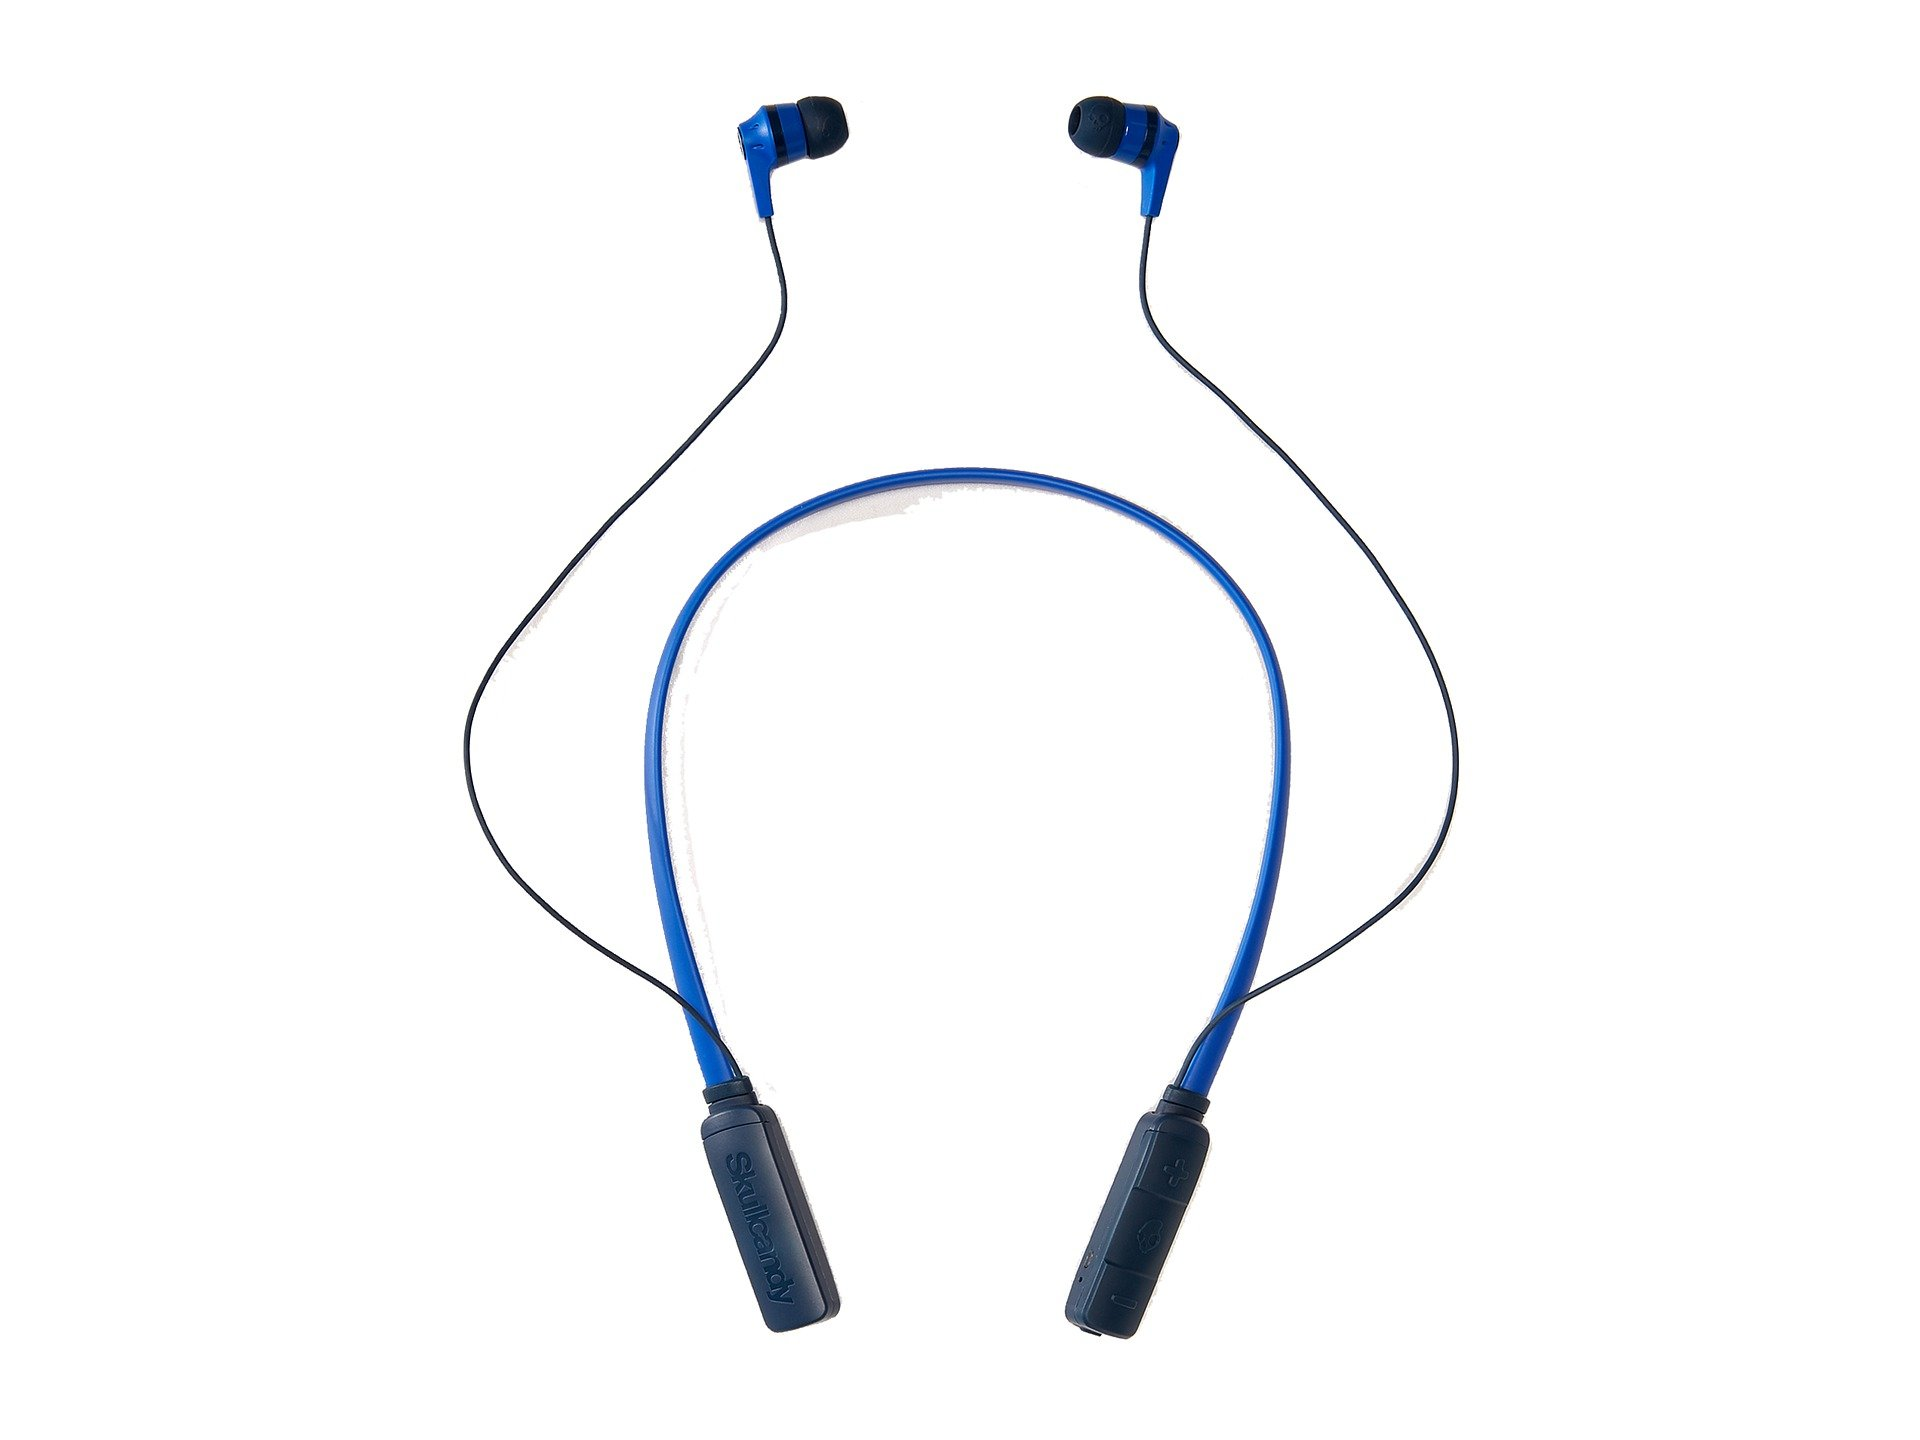 Skullcandy Ink'd Bluetooth Wireless Earbuds with Microphone, Noise Isolating Supreme Sound, 8-Hour Rechargeable Battery, Lightweight with Flexible Collar, Royal Blue